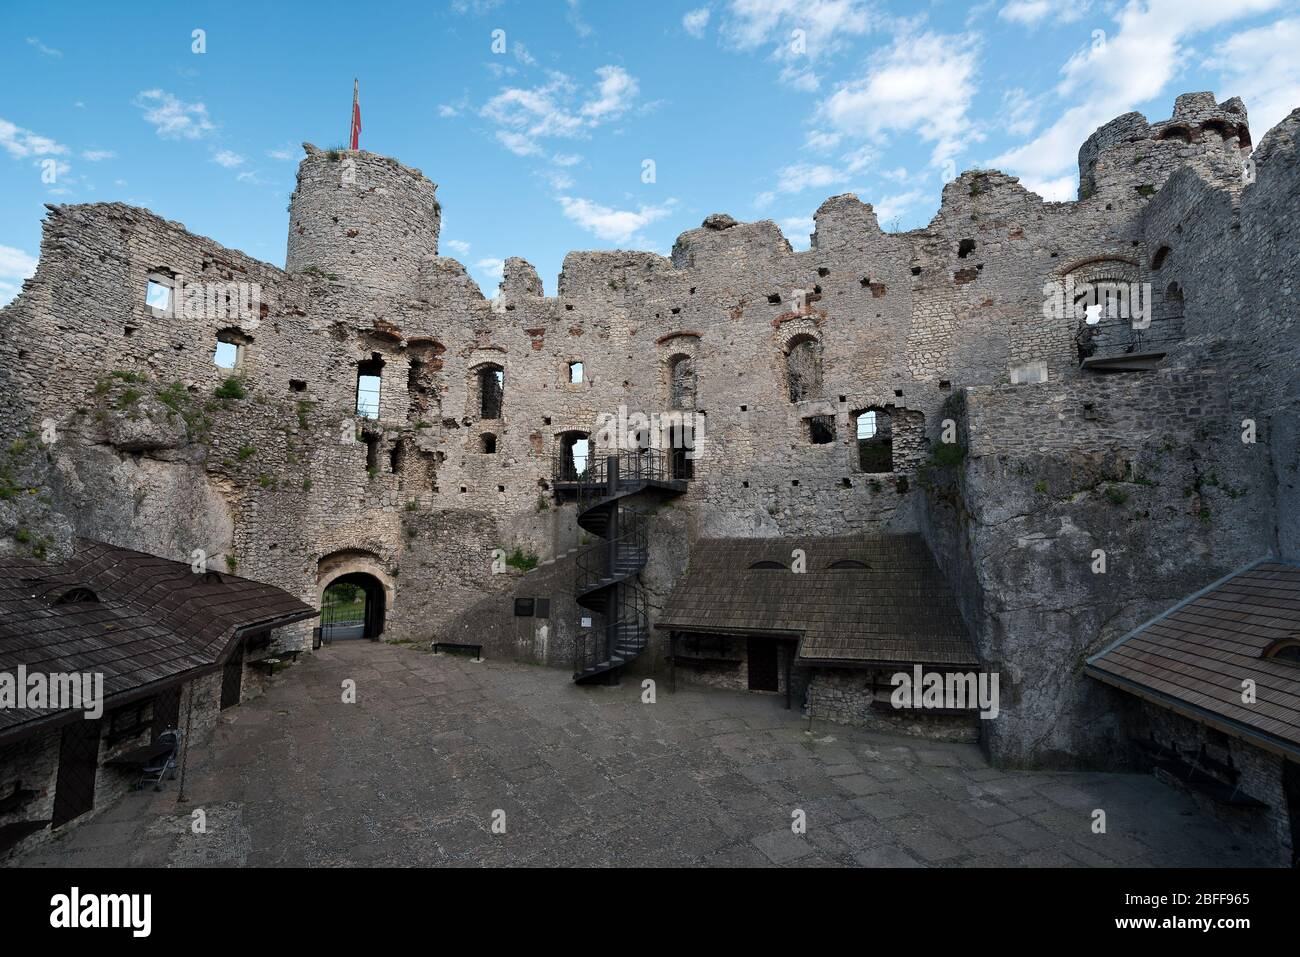 Castle ruins in Ogrodzieniec, Poland. Ogrodzieniec is one of the medieval castle on the Trail of the Eagles Nests Stock Photo